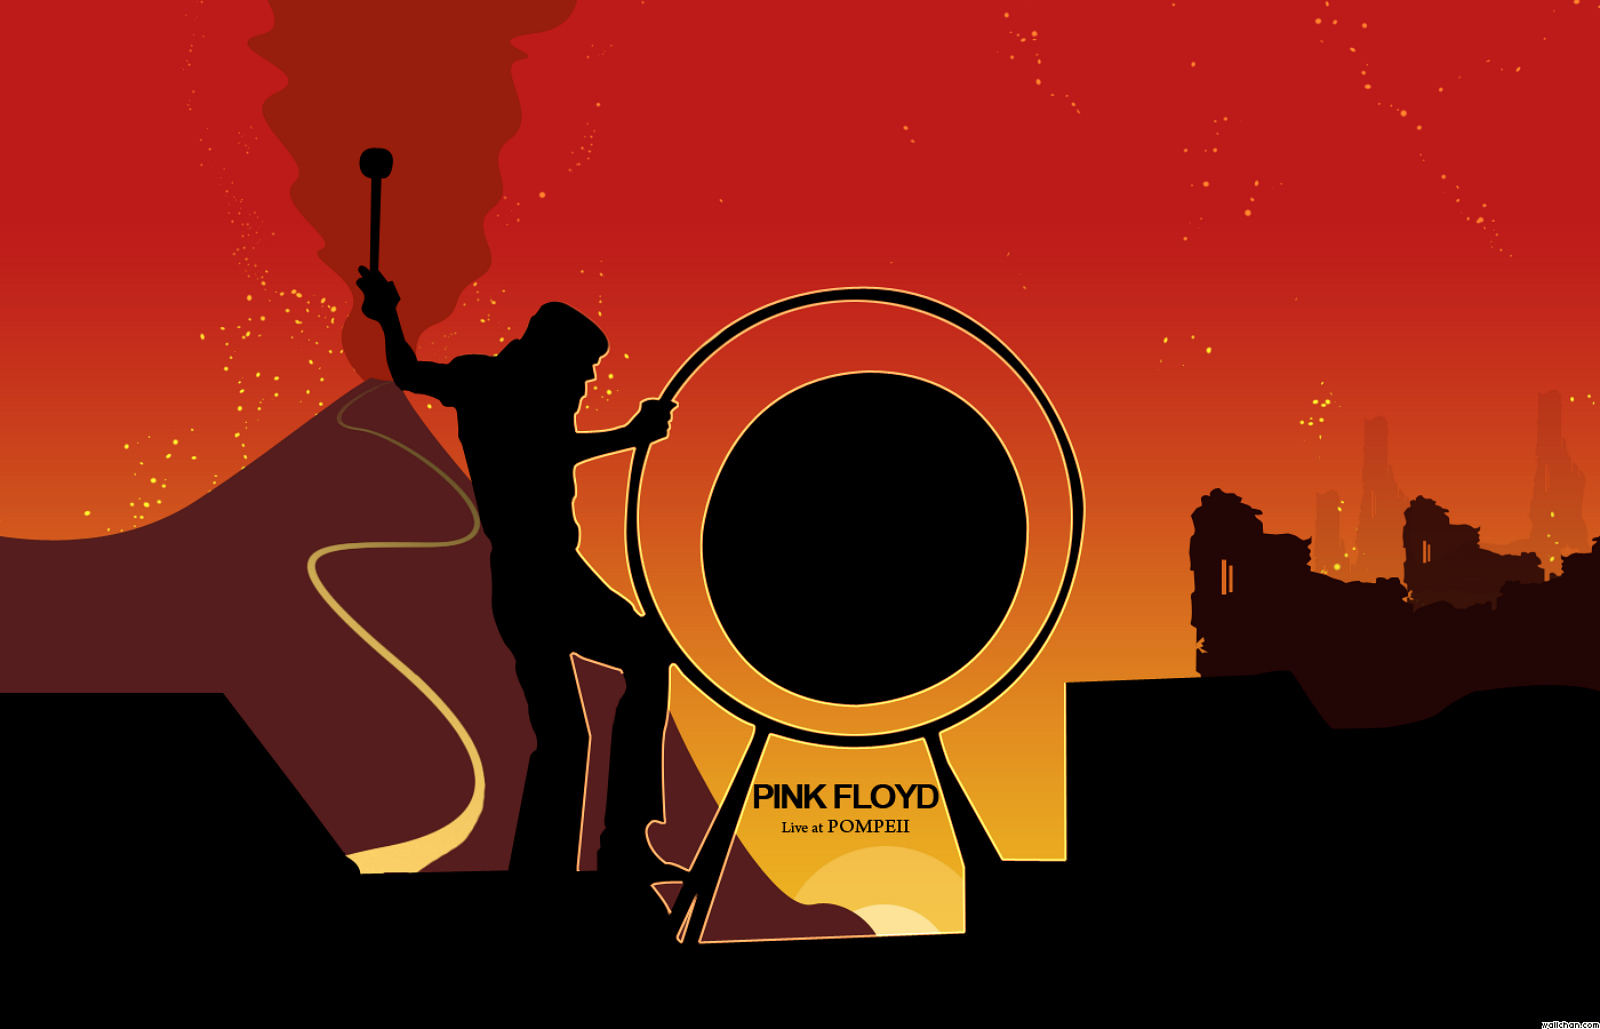 Images of Pink Floyd Meddle Wallpaper - www industrious info